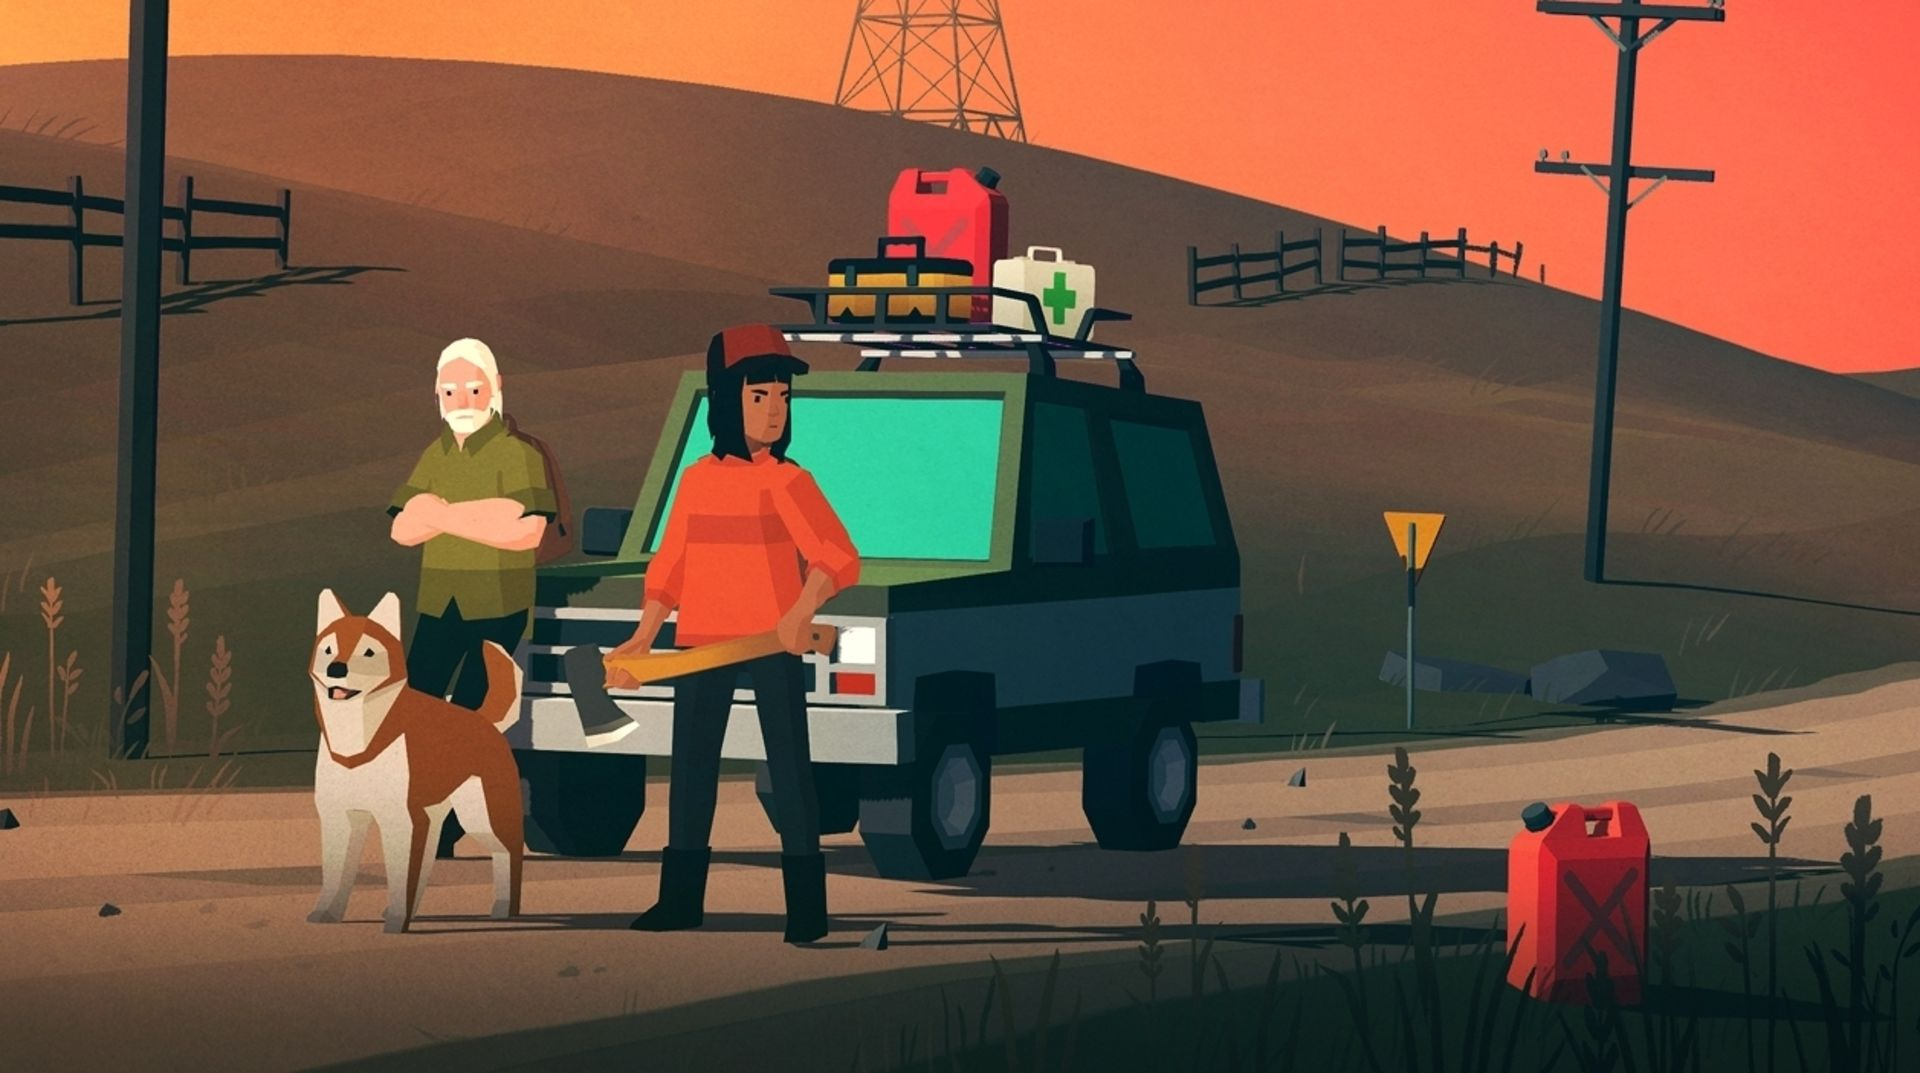 The Nintendo eShop has noteworthy discounts on indie games like Overland.